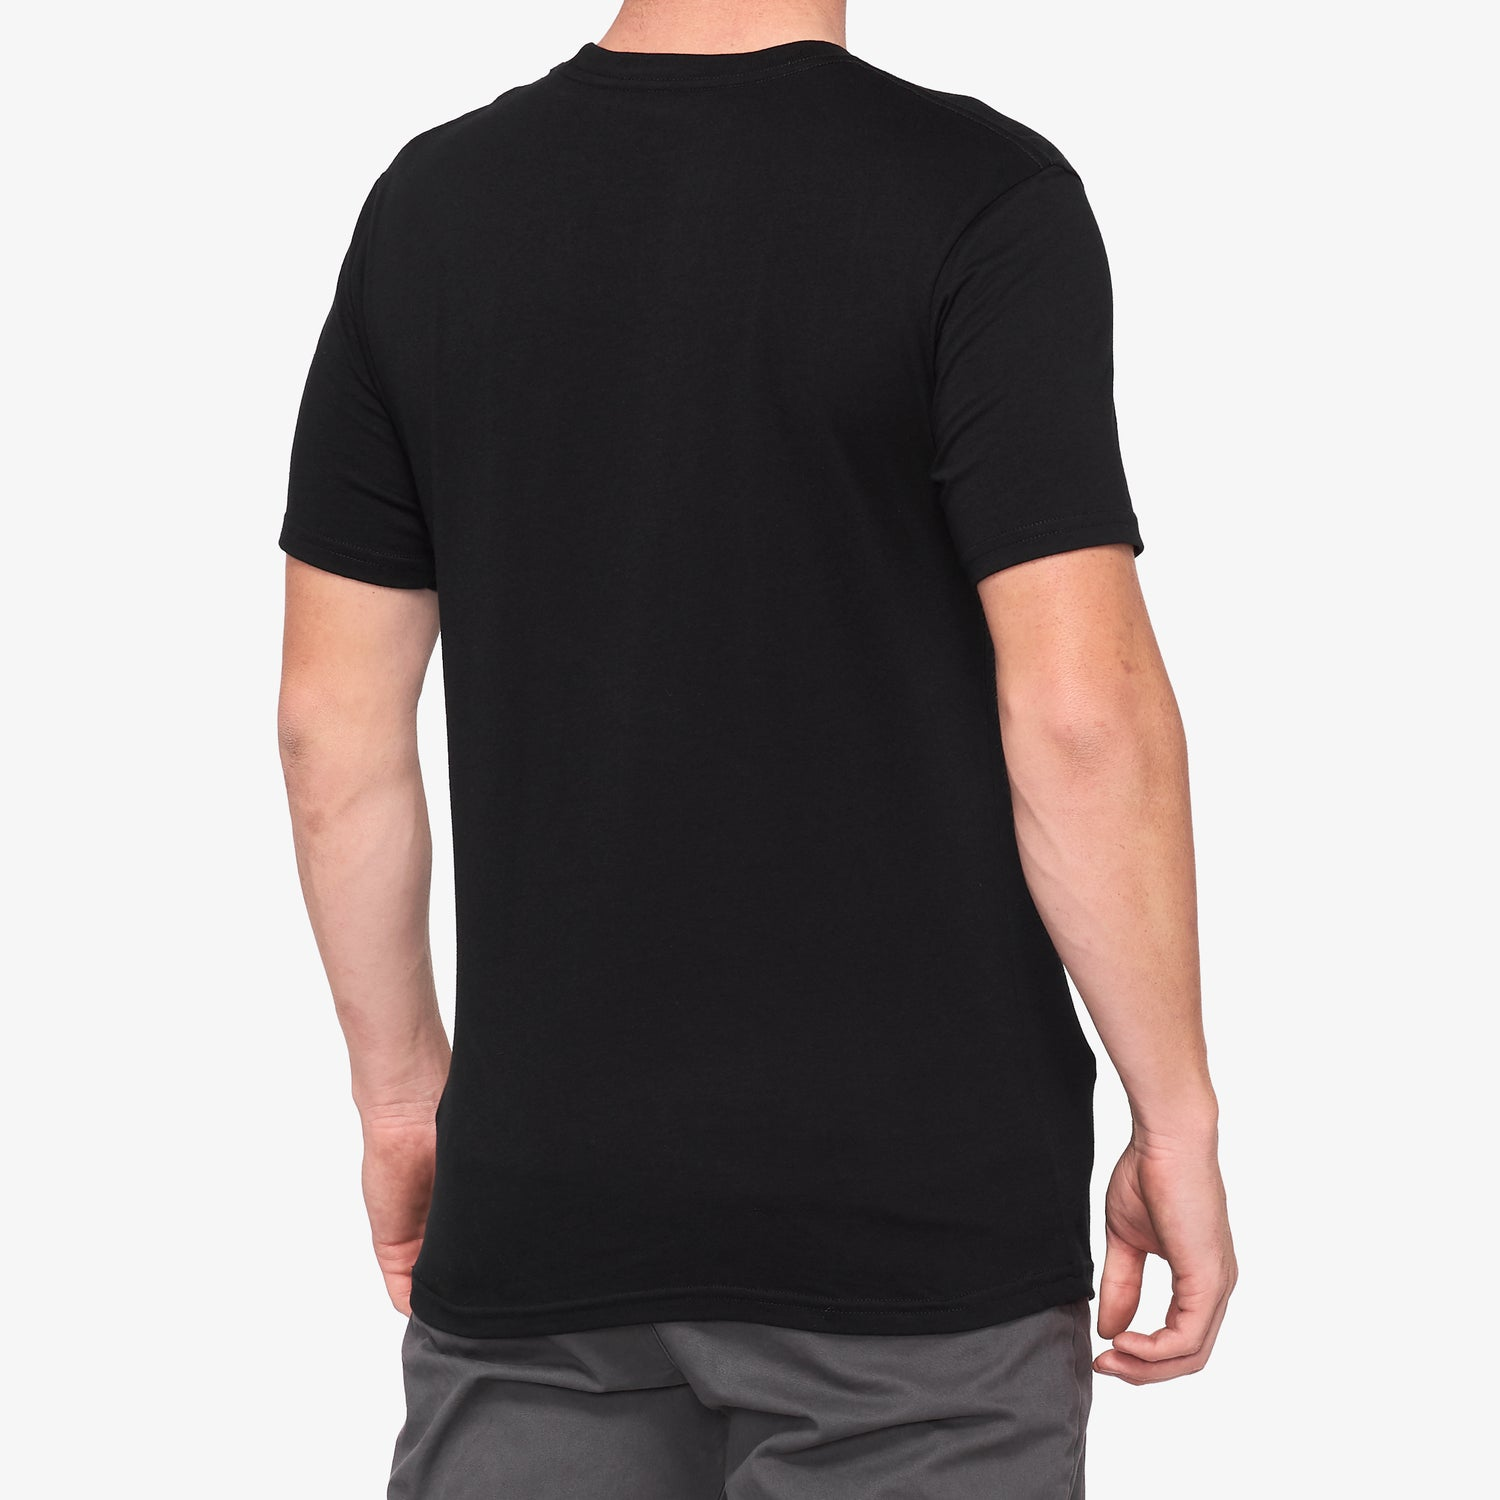 OPSECT T-shirt Black